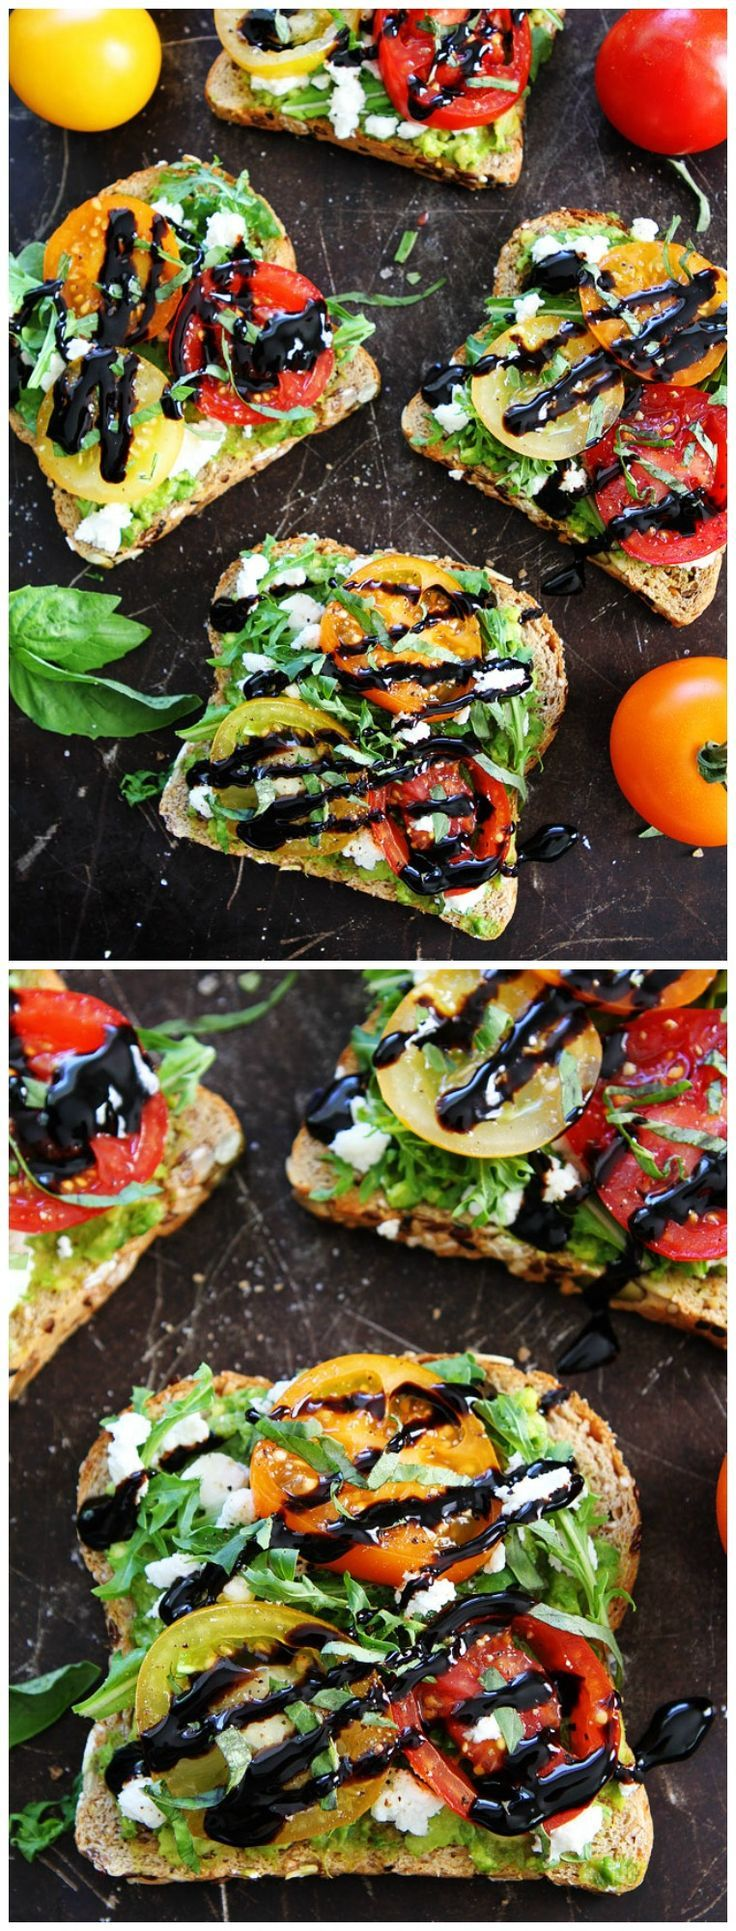 Avocado, Tomato, and Goat Cheese Toast Recipe on twopeasandtheirpo... The BEST avocado toast and it is so easy to make! It's great for breakfast, lunch, dinner, or snack time!